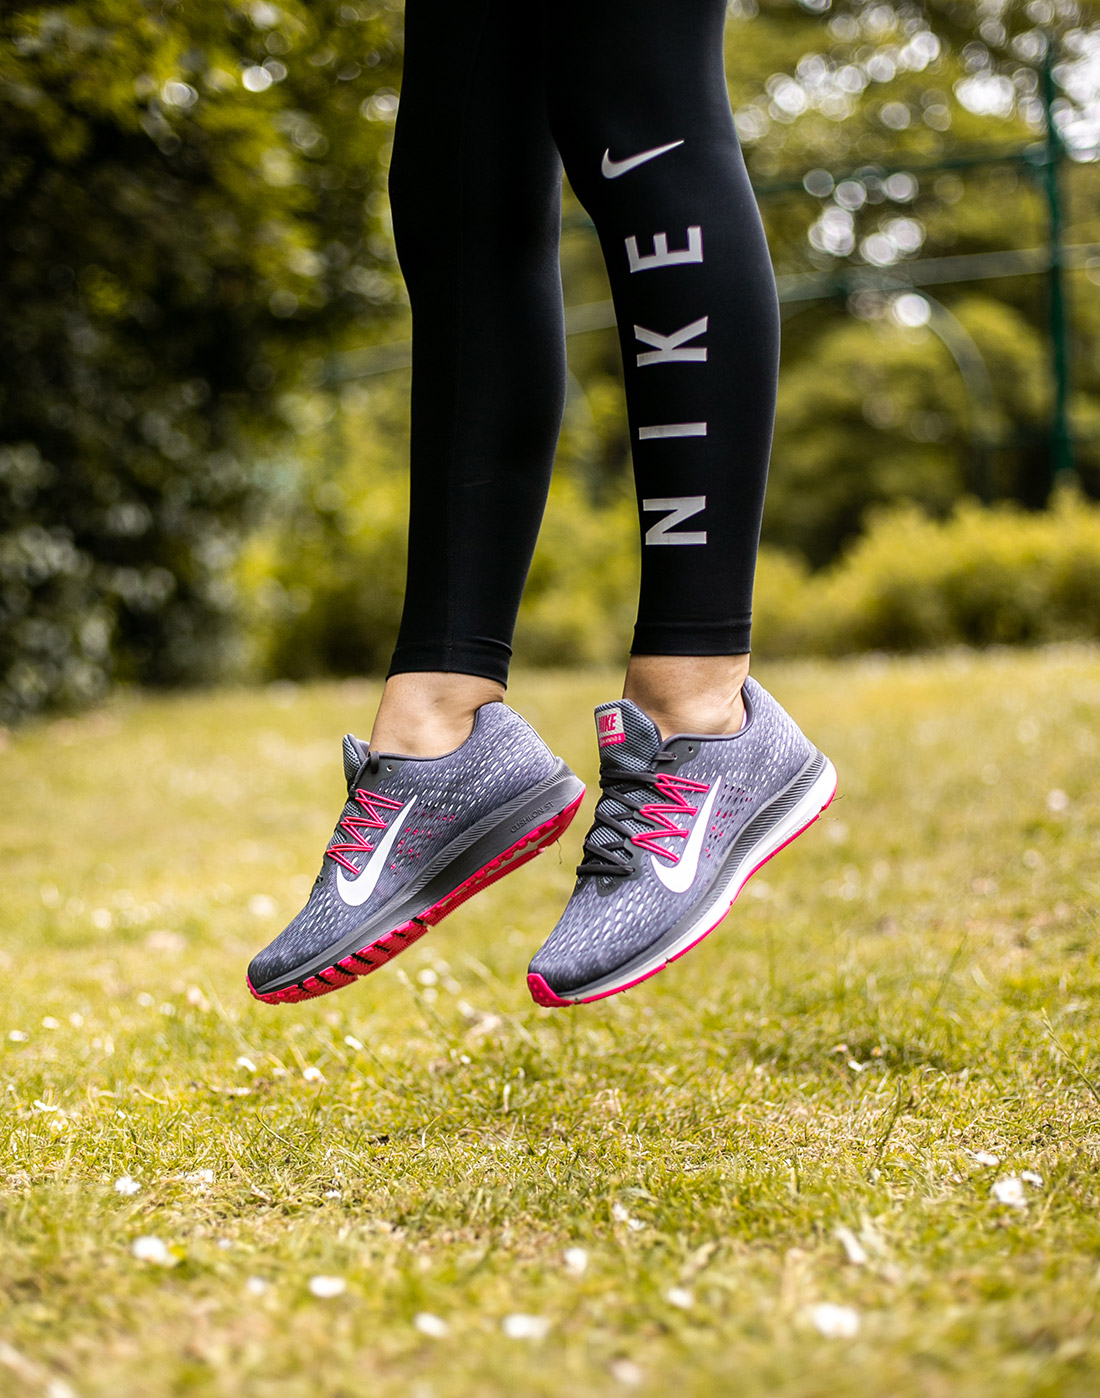 new product 1679d 0a732 Nike Womens Air Zoom Winflo 5 | Life Style Sports